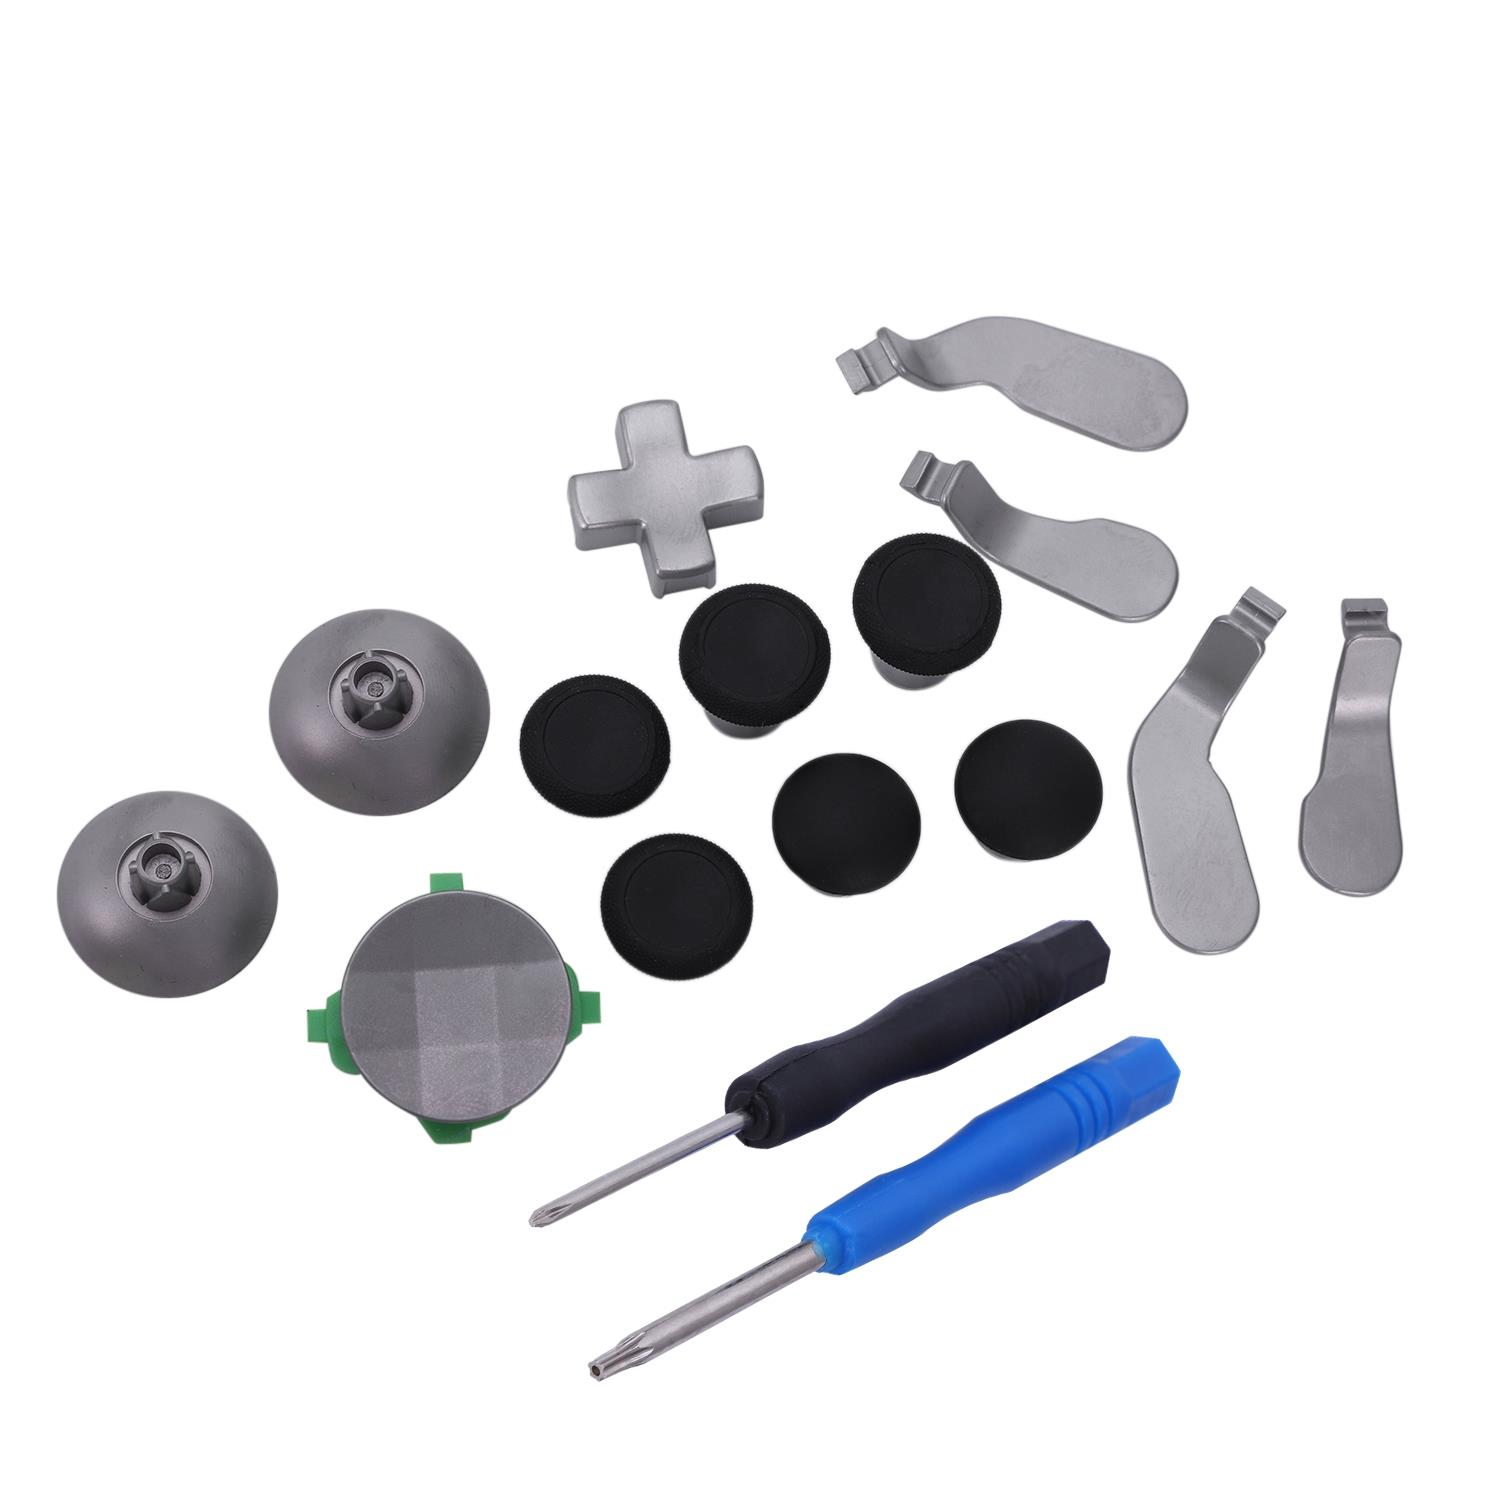 16-in-1 Replacement Parts with Controller Parts Compatible Accessories Swap Thumbsticks + 4 Paddles + 2 D-Pads Elite Controlle16-in-1 Replacement Parts with Controller Parts Compatible Accessories Swap Thumbsticks + 4 Paddles + 2 D-Pads Elite Controlle